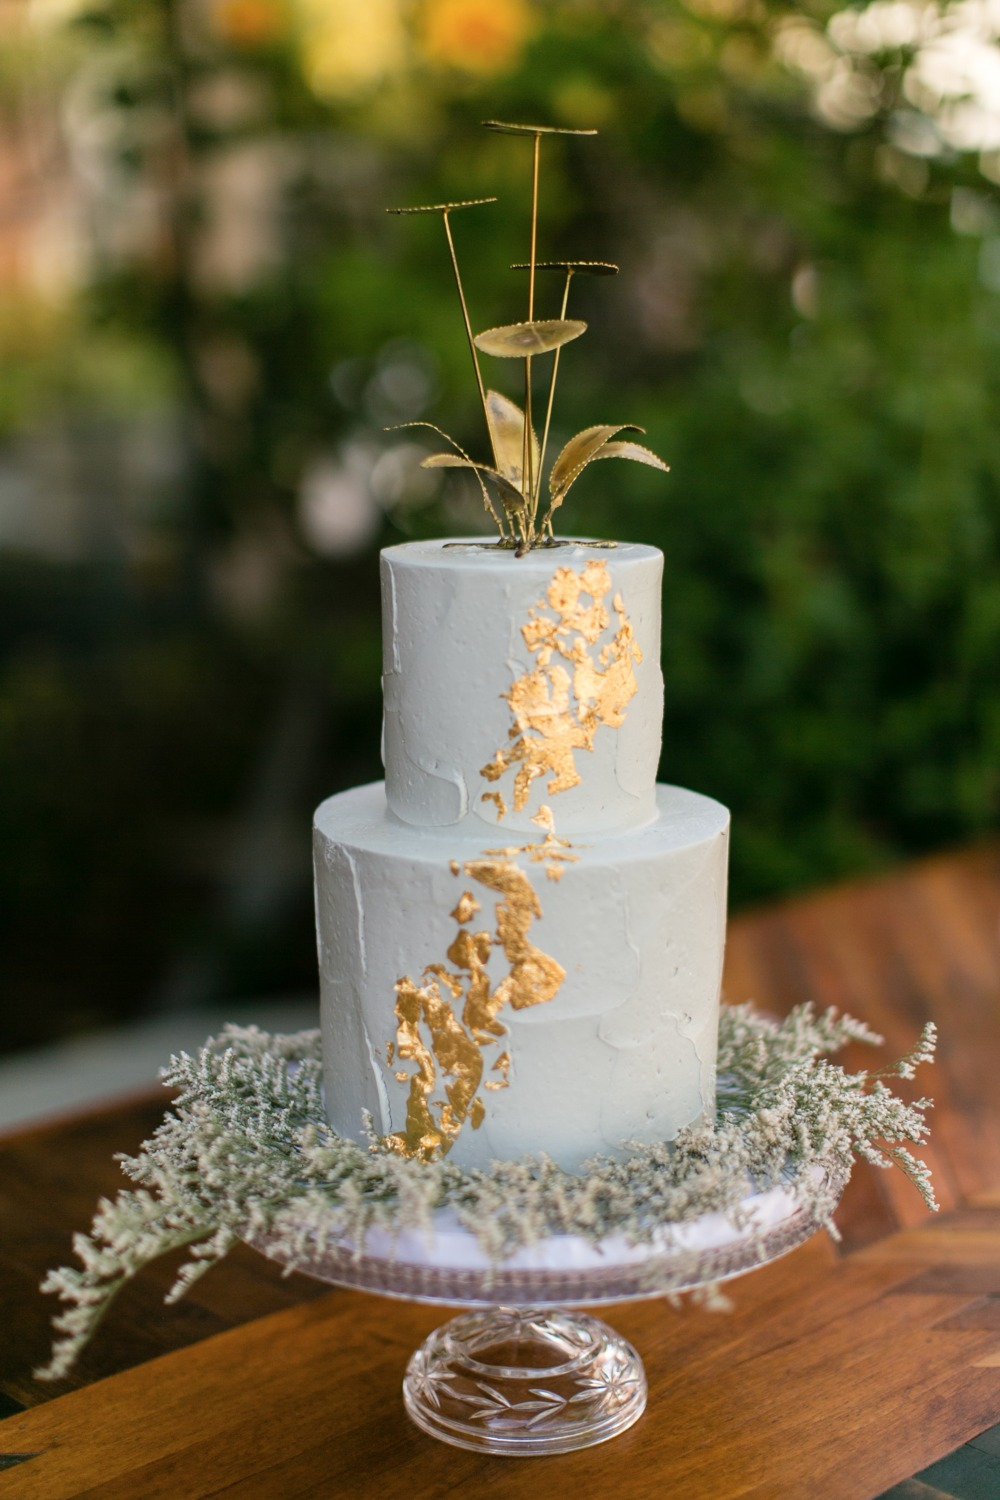 White and gold foil cake with gold metal topper